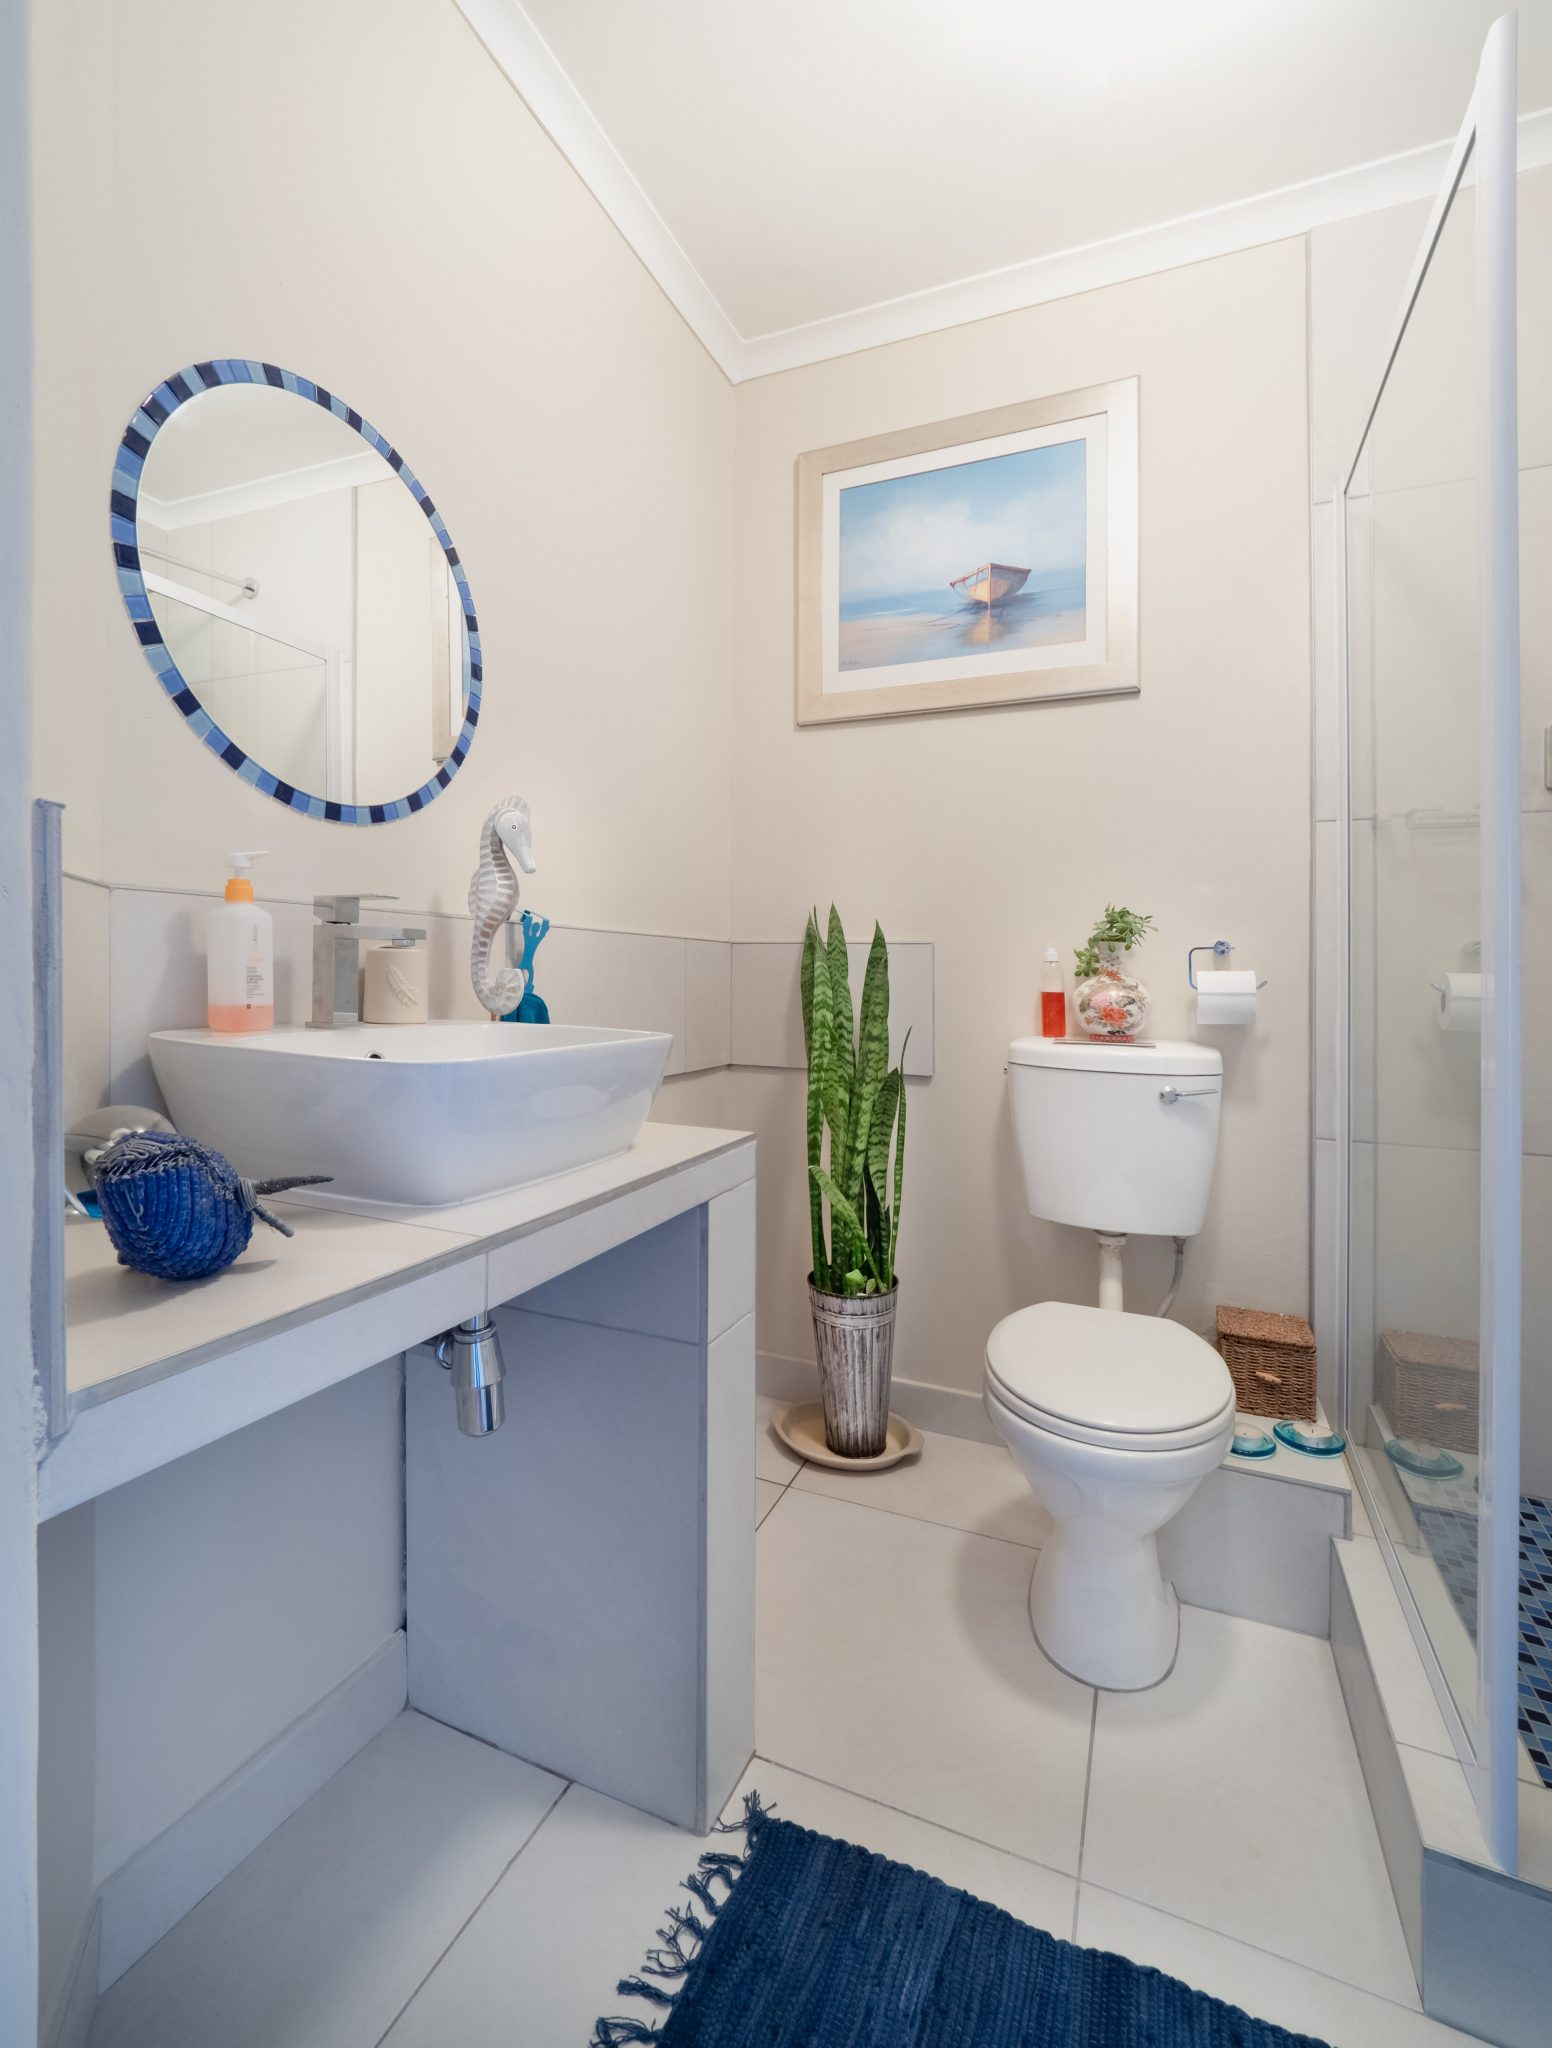 5 Tips For A Small Bathroom Redesign